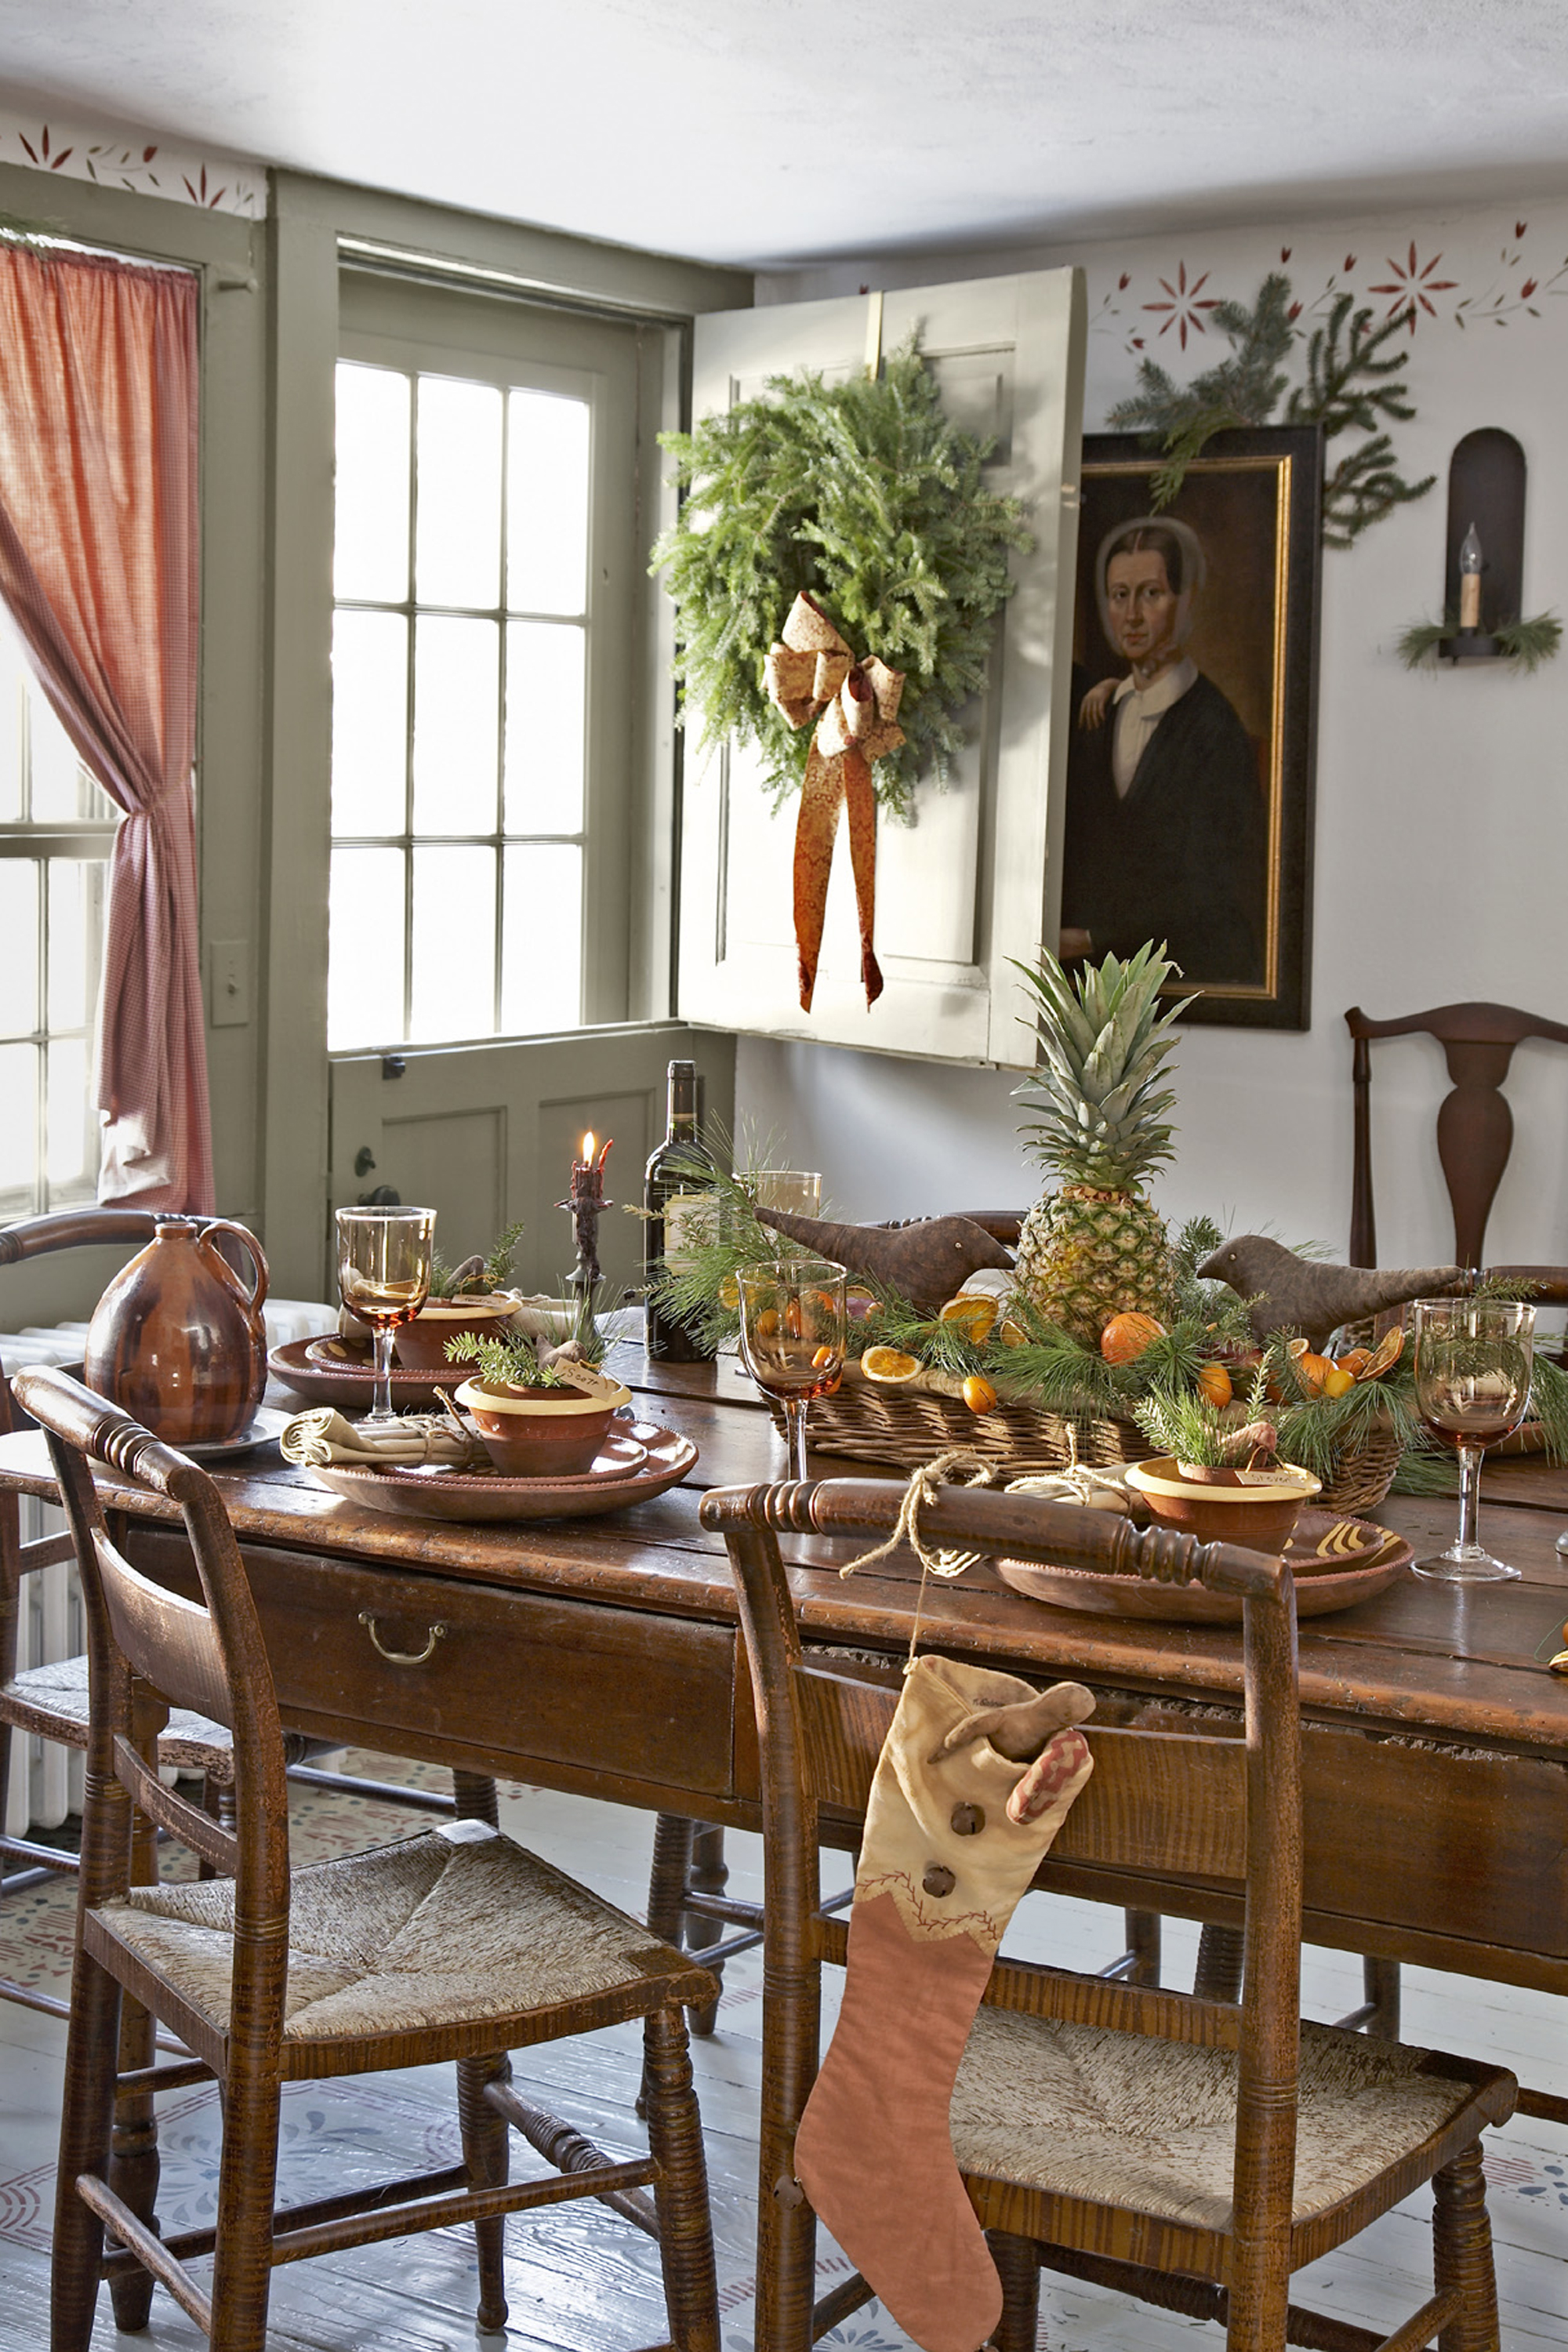 45 Best Christmas Table Settings   Decorations And Centerpiece Ideas For  Your Christmas Table